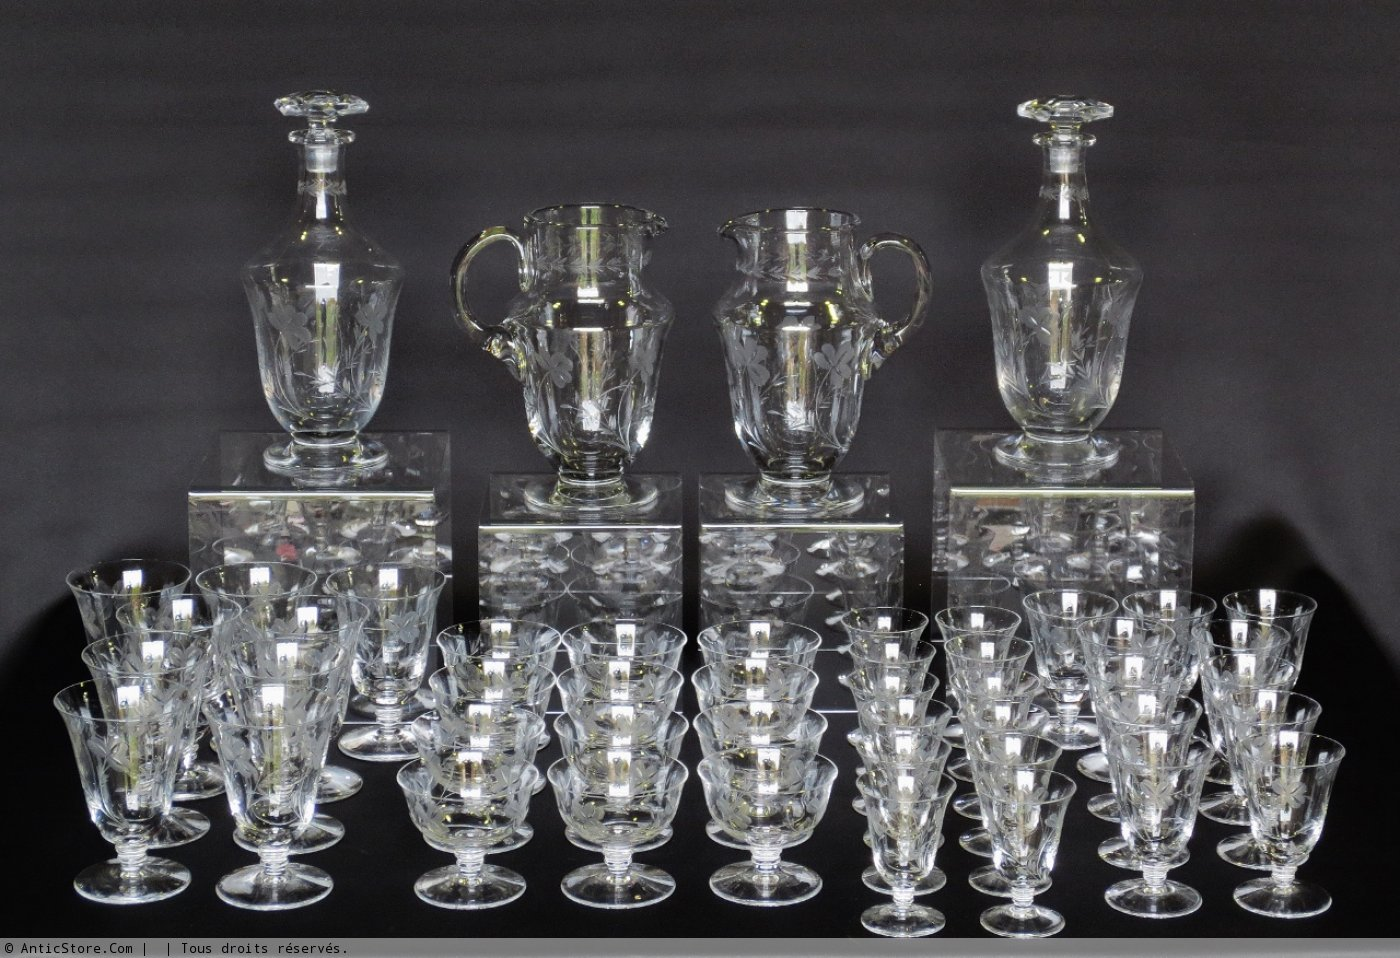 service de verres en cristal poque 1930 xxe si cle n. Black Bedroom Furniture Sets. Home Design Ideas